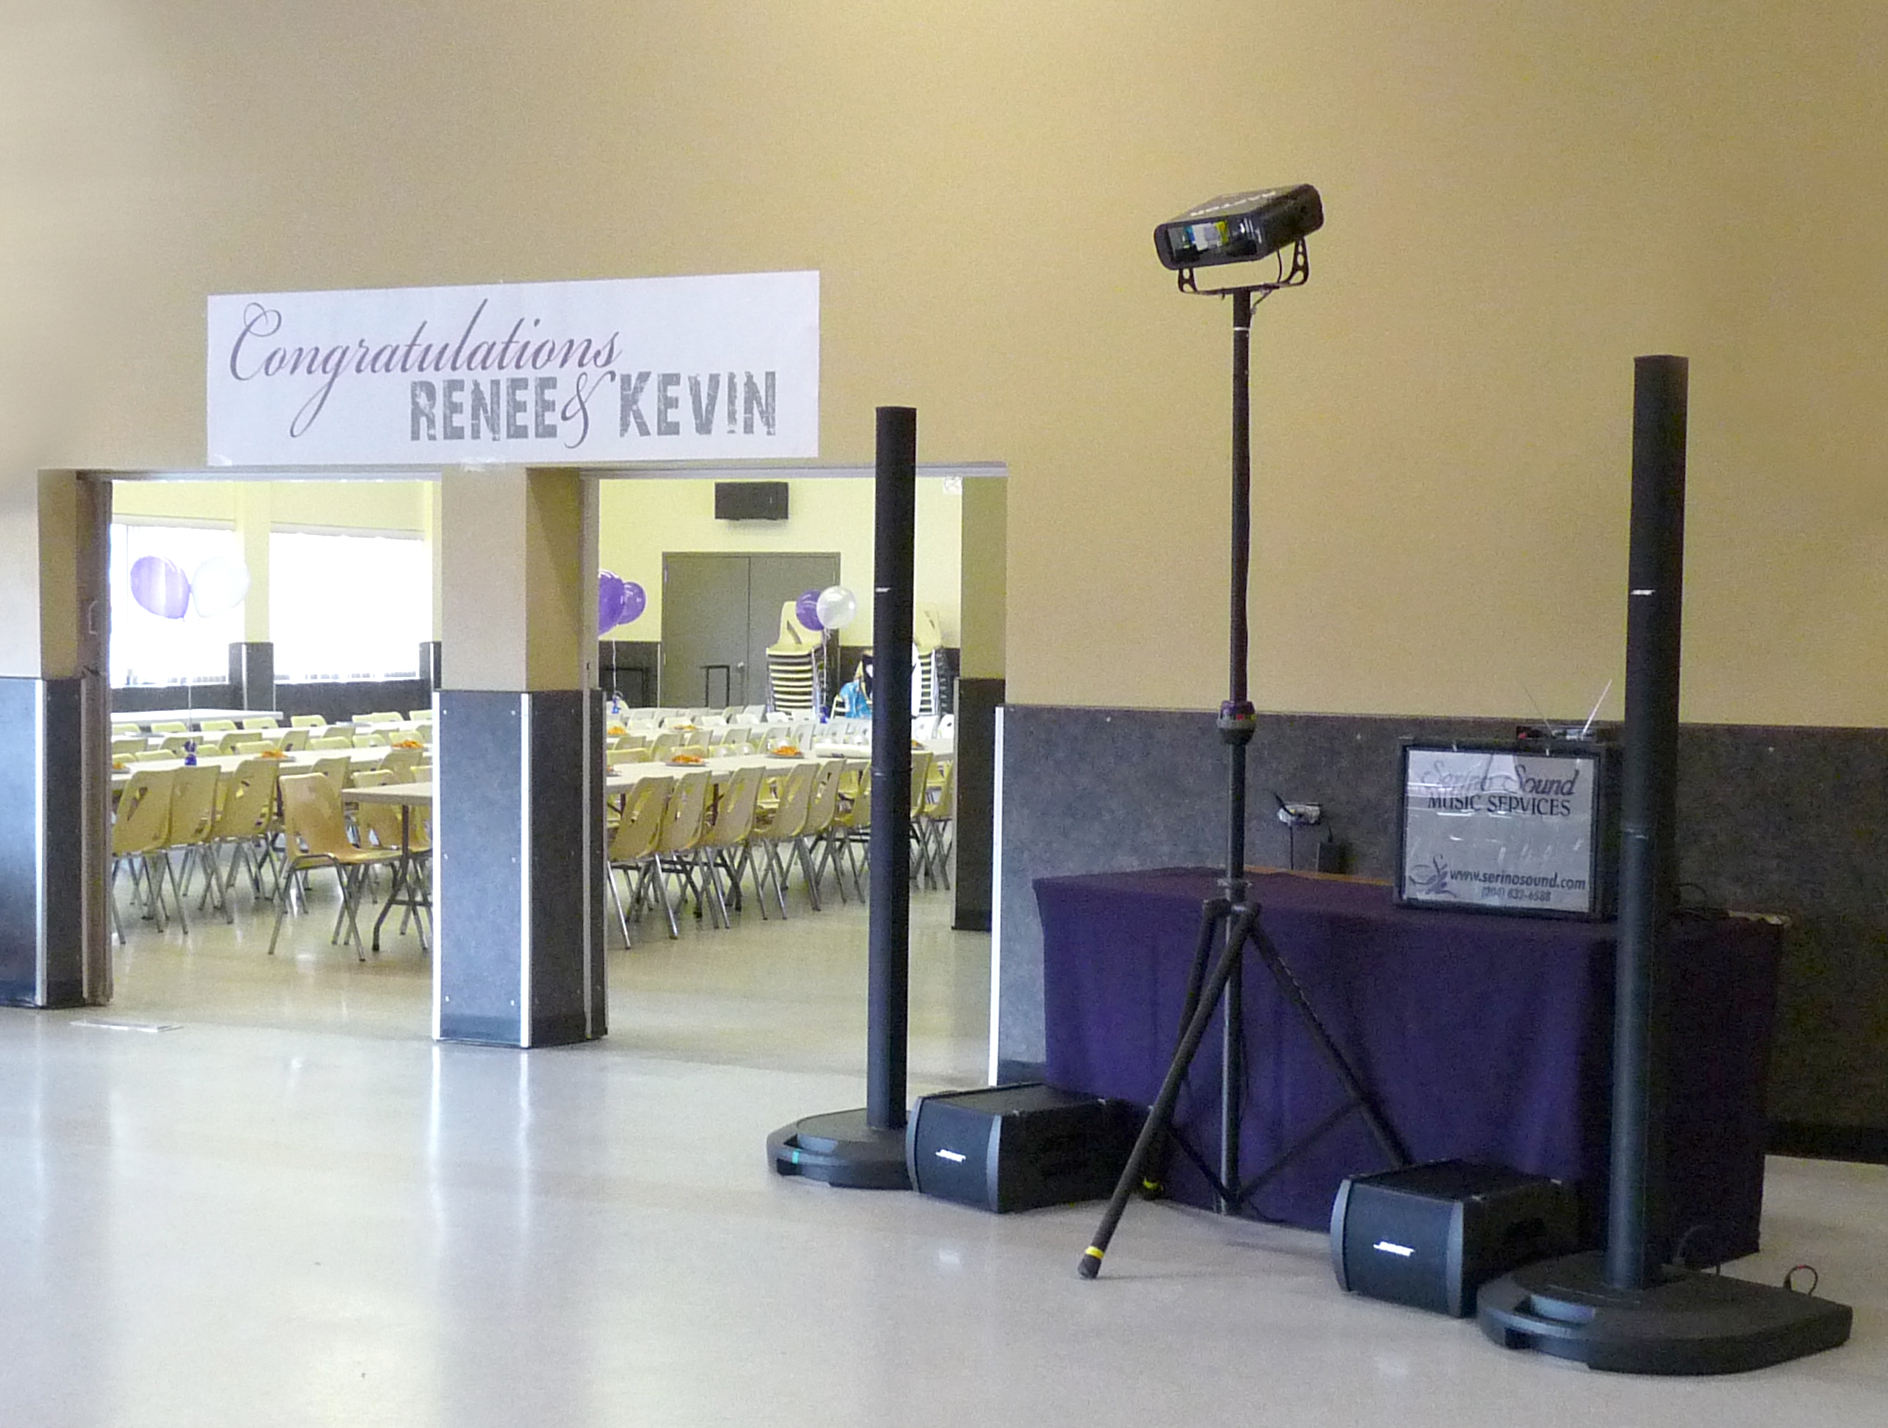 Setup at Norwood Community Centre